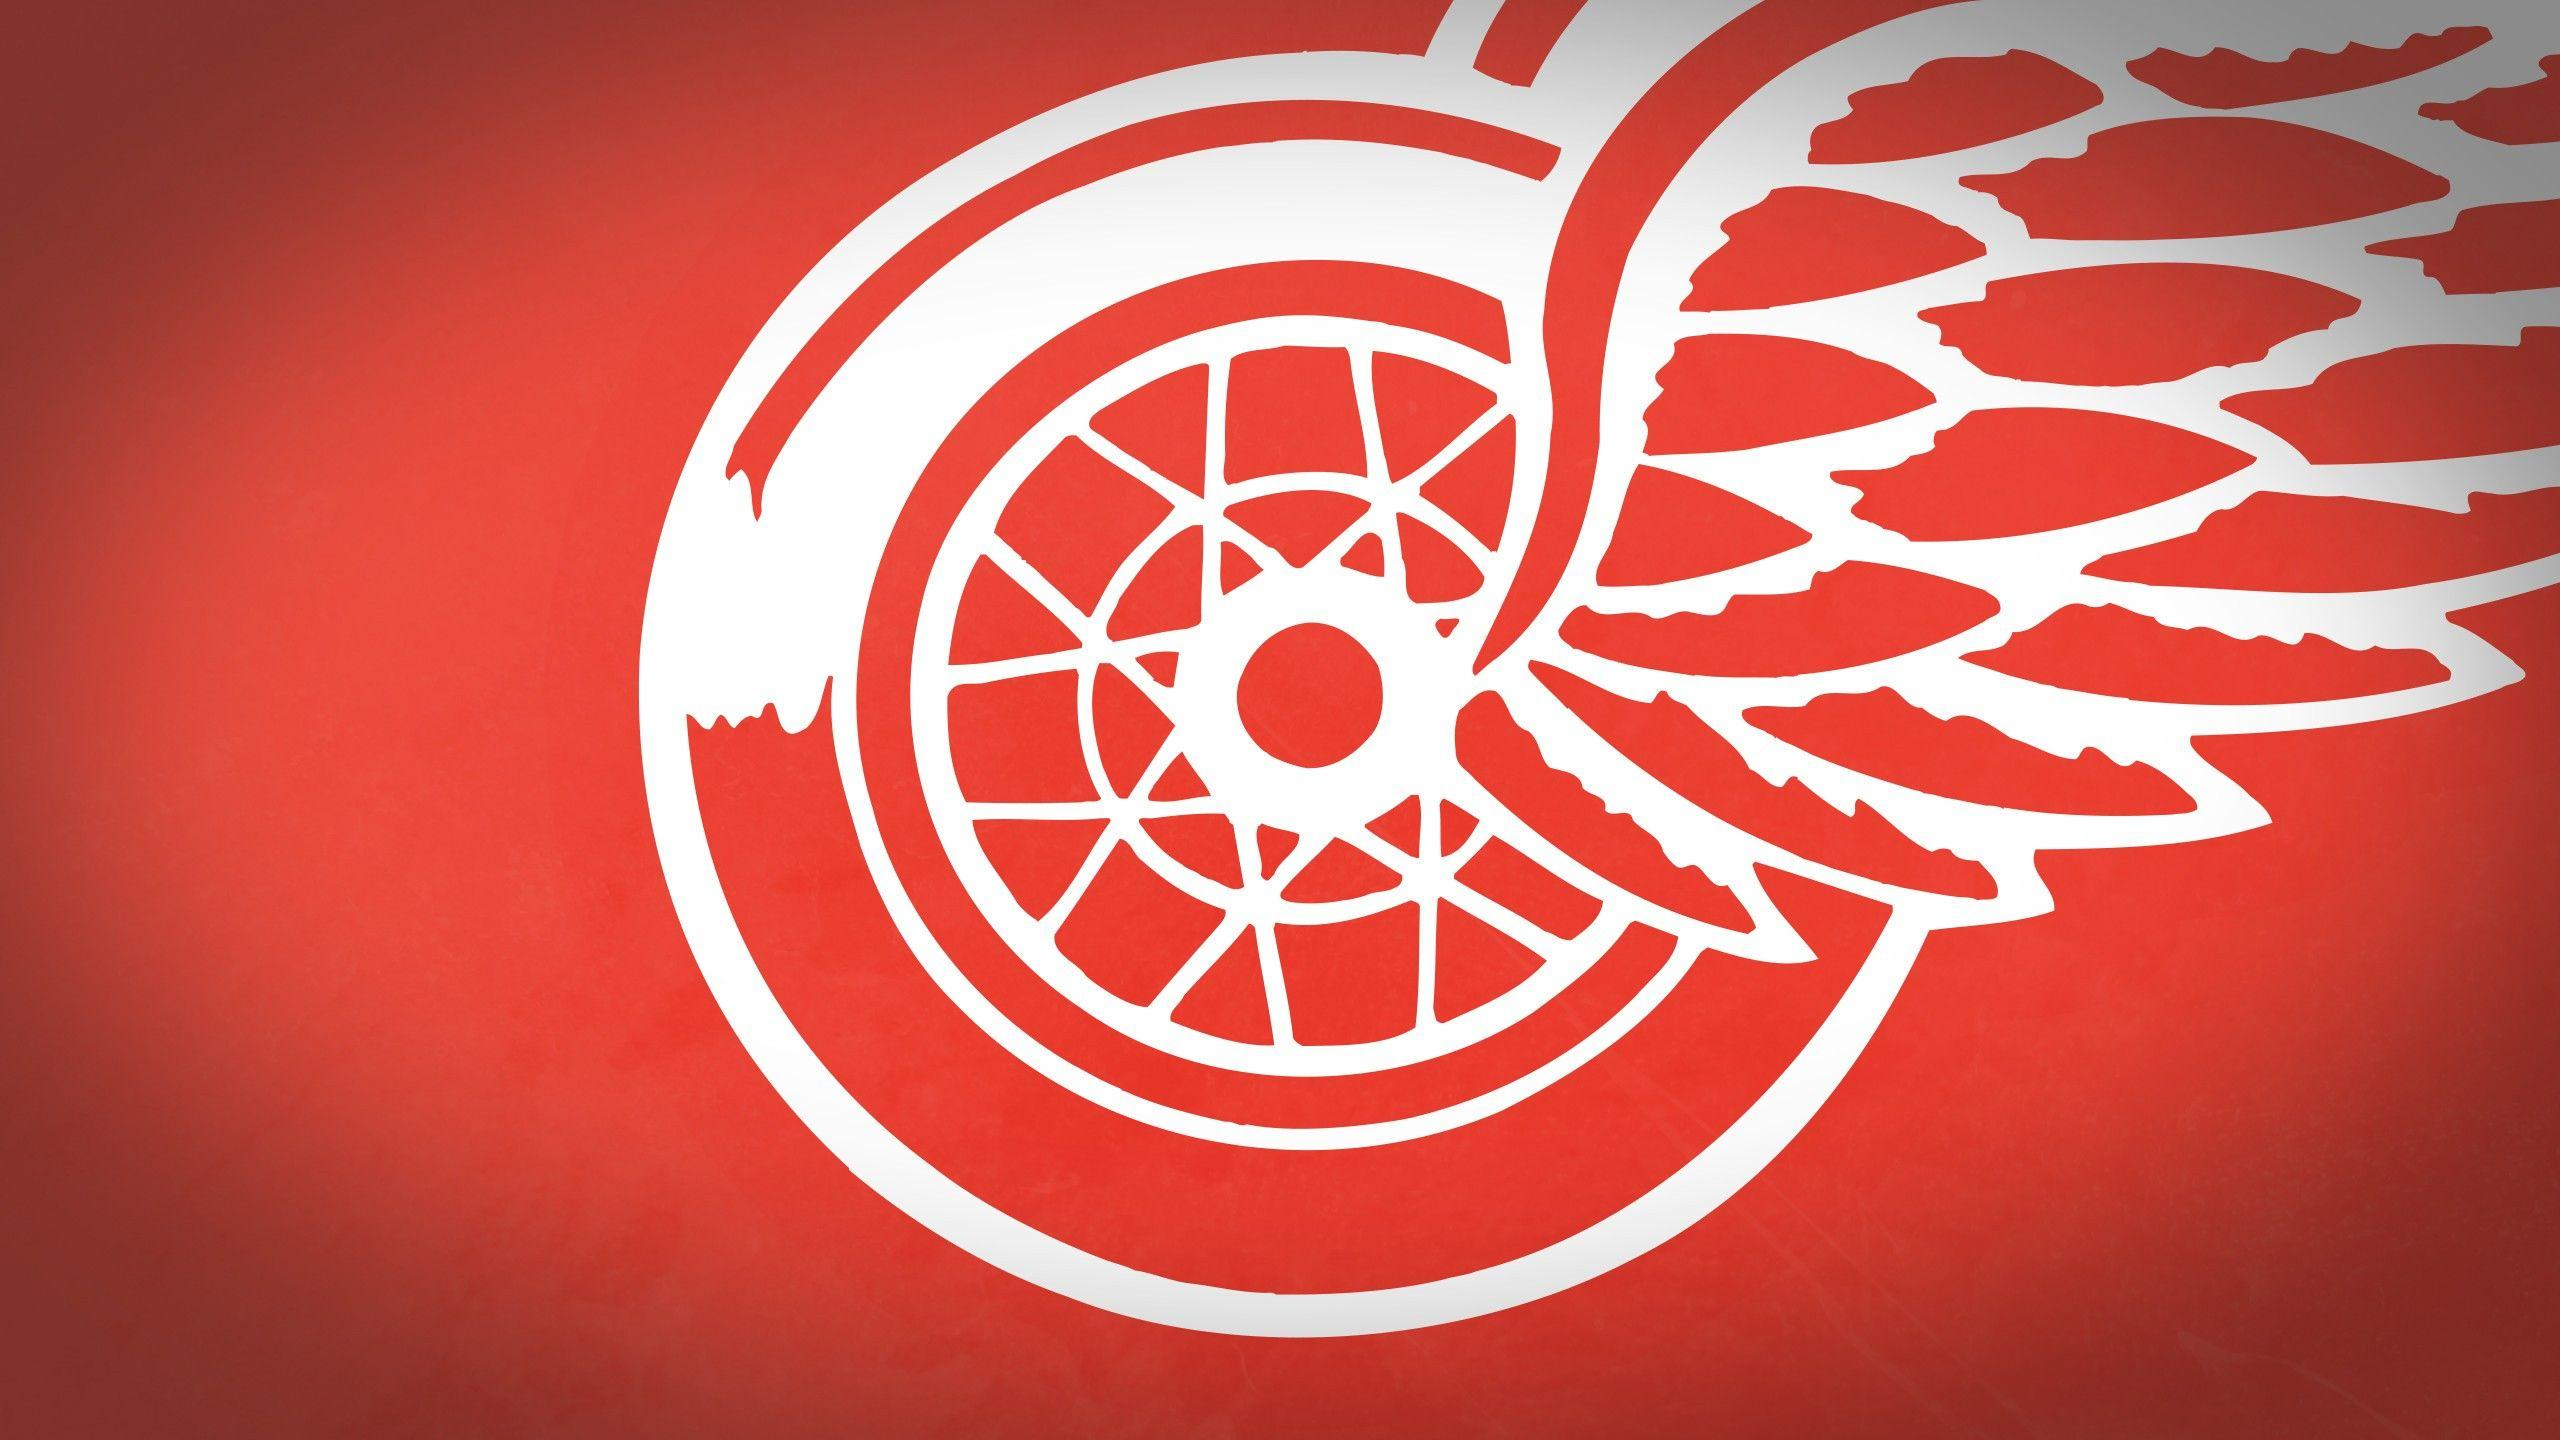 Nhl Detroit Red Wings Wallpapers Wallpaper Cave